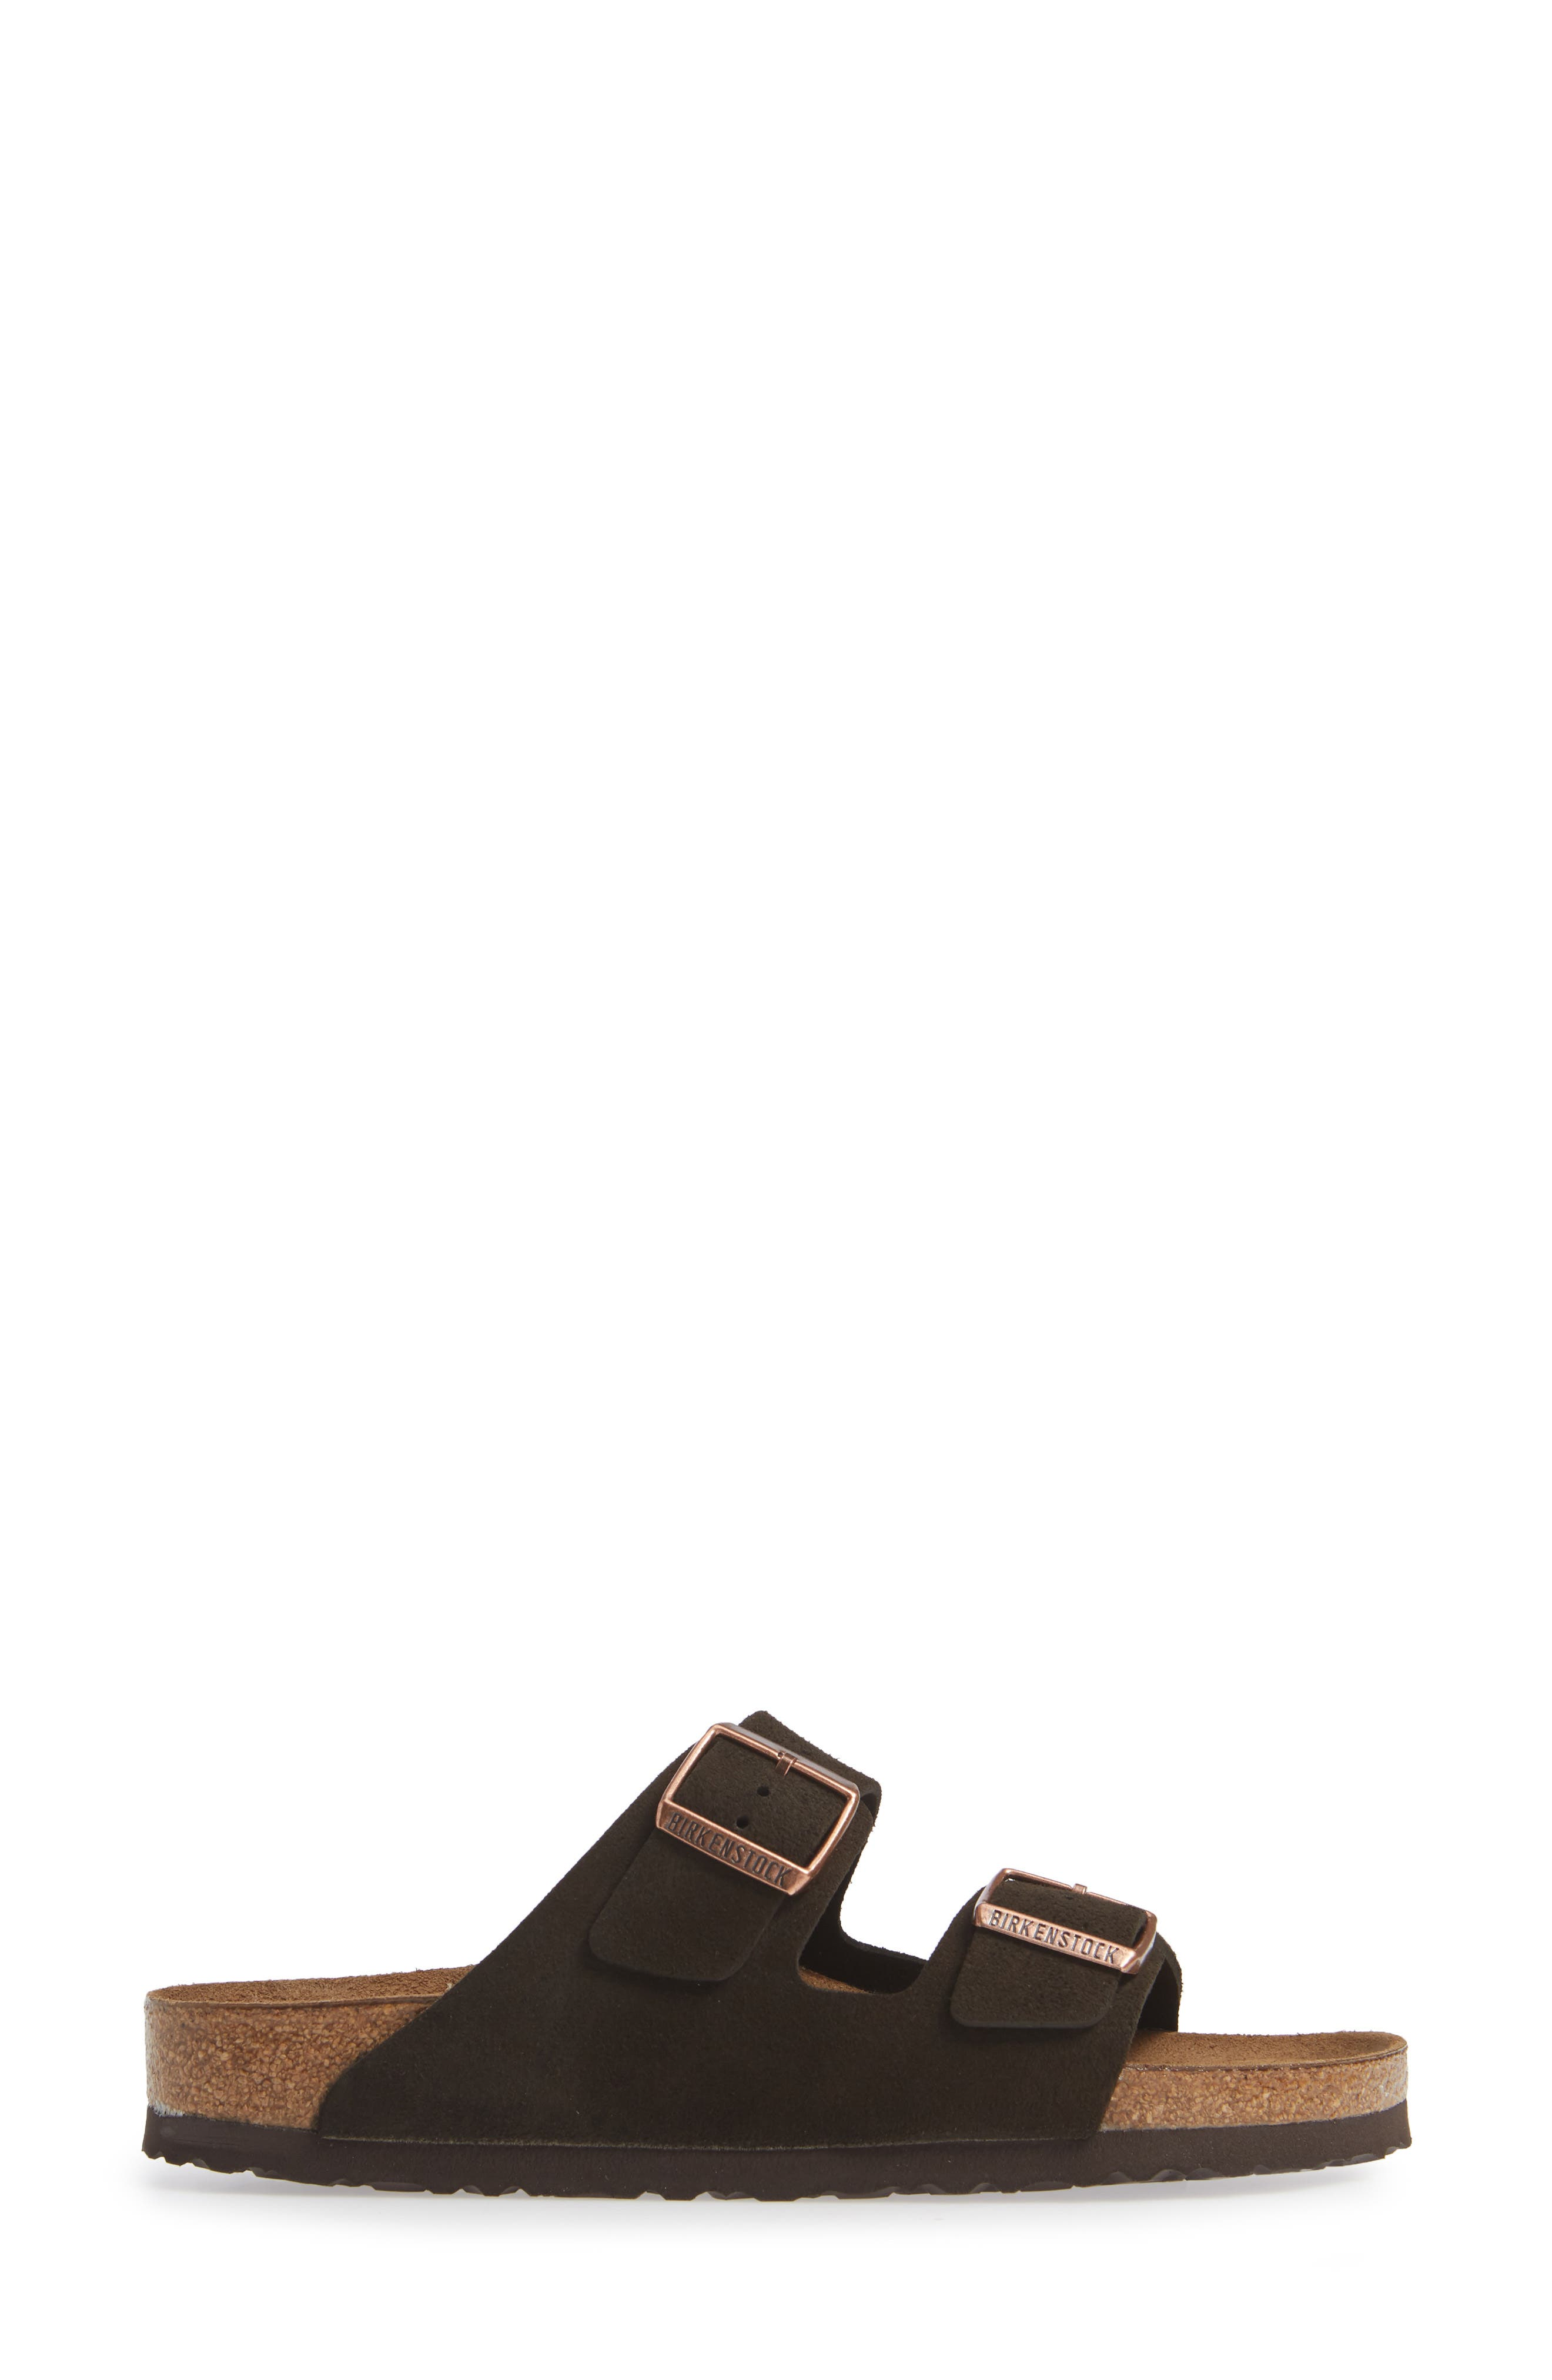 'Arizona' Soft Footbed Suede Sandal,                             Alternate thumbnail 3, color,                             MOCHA SUEDE